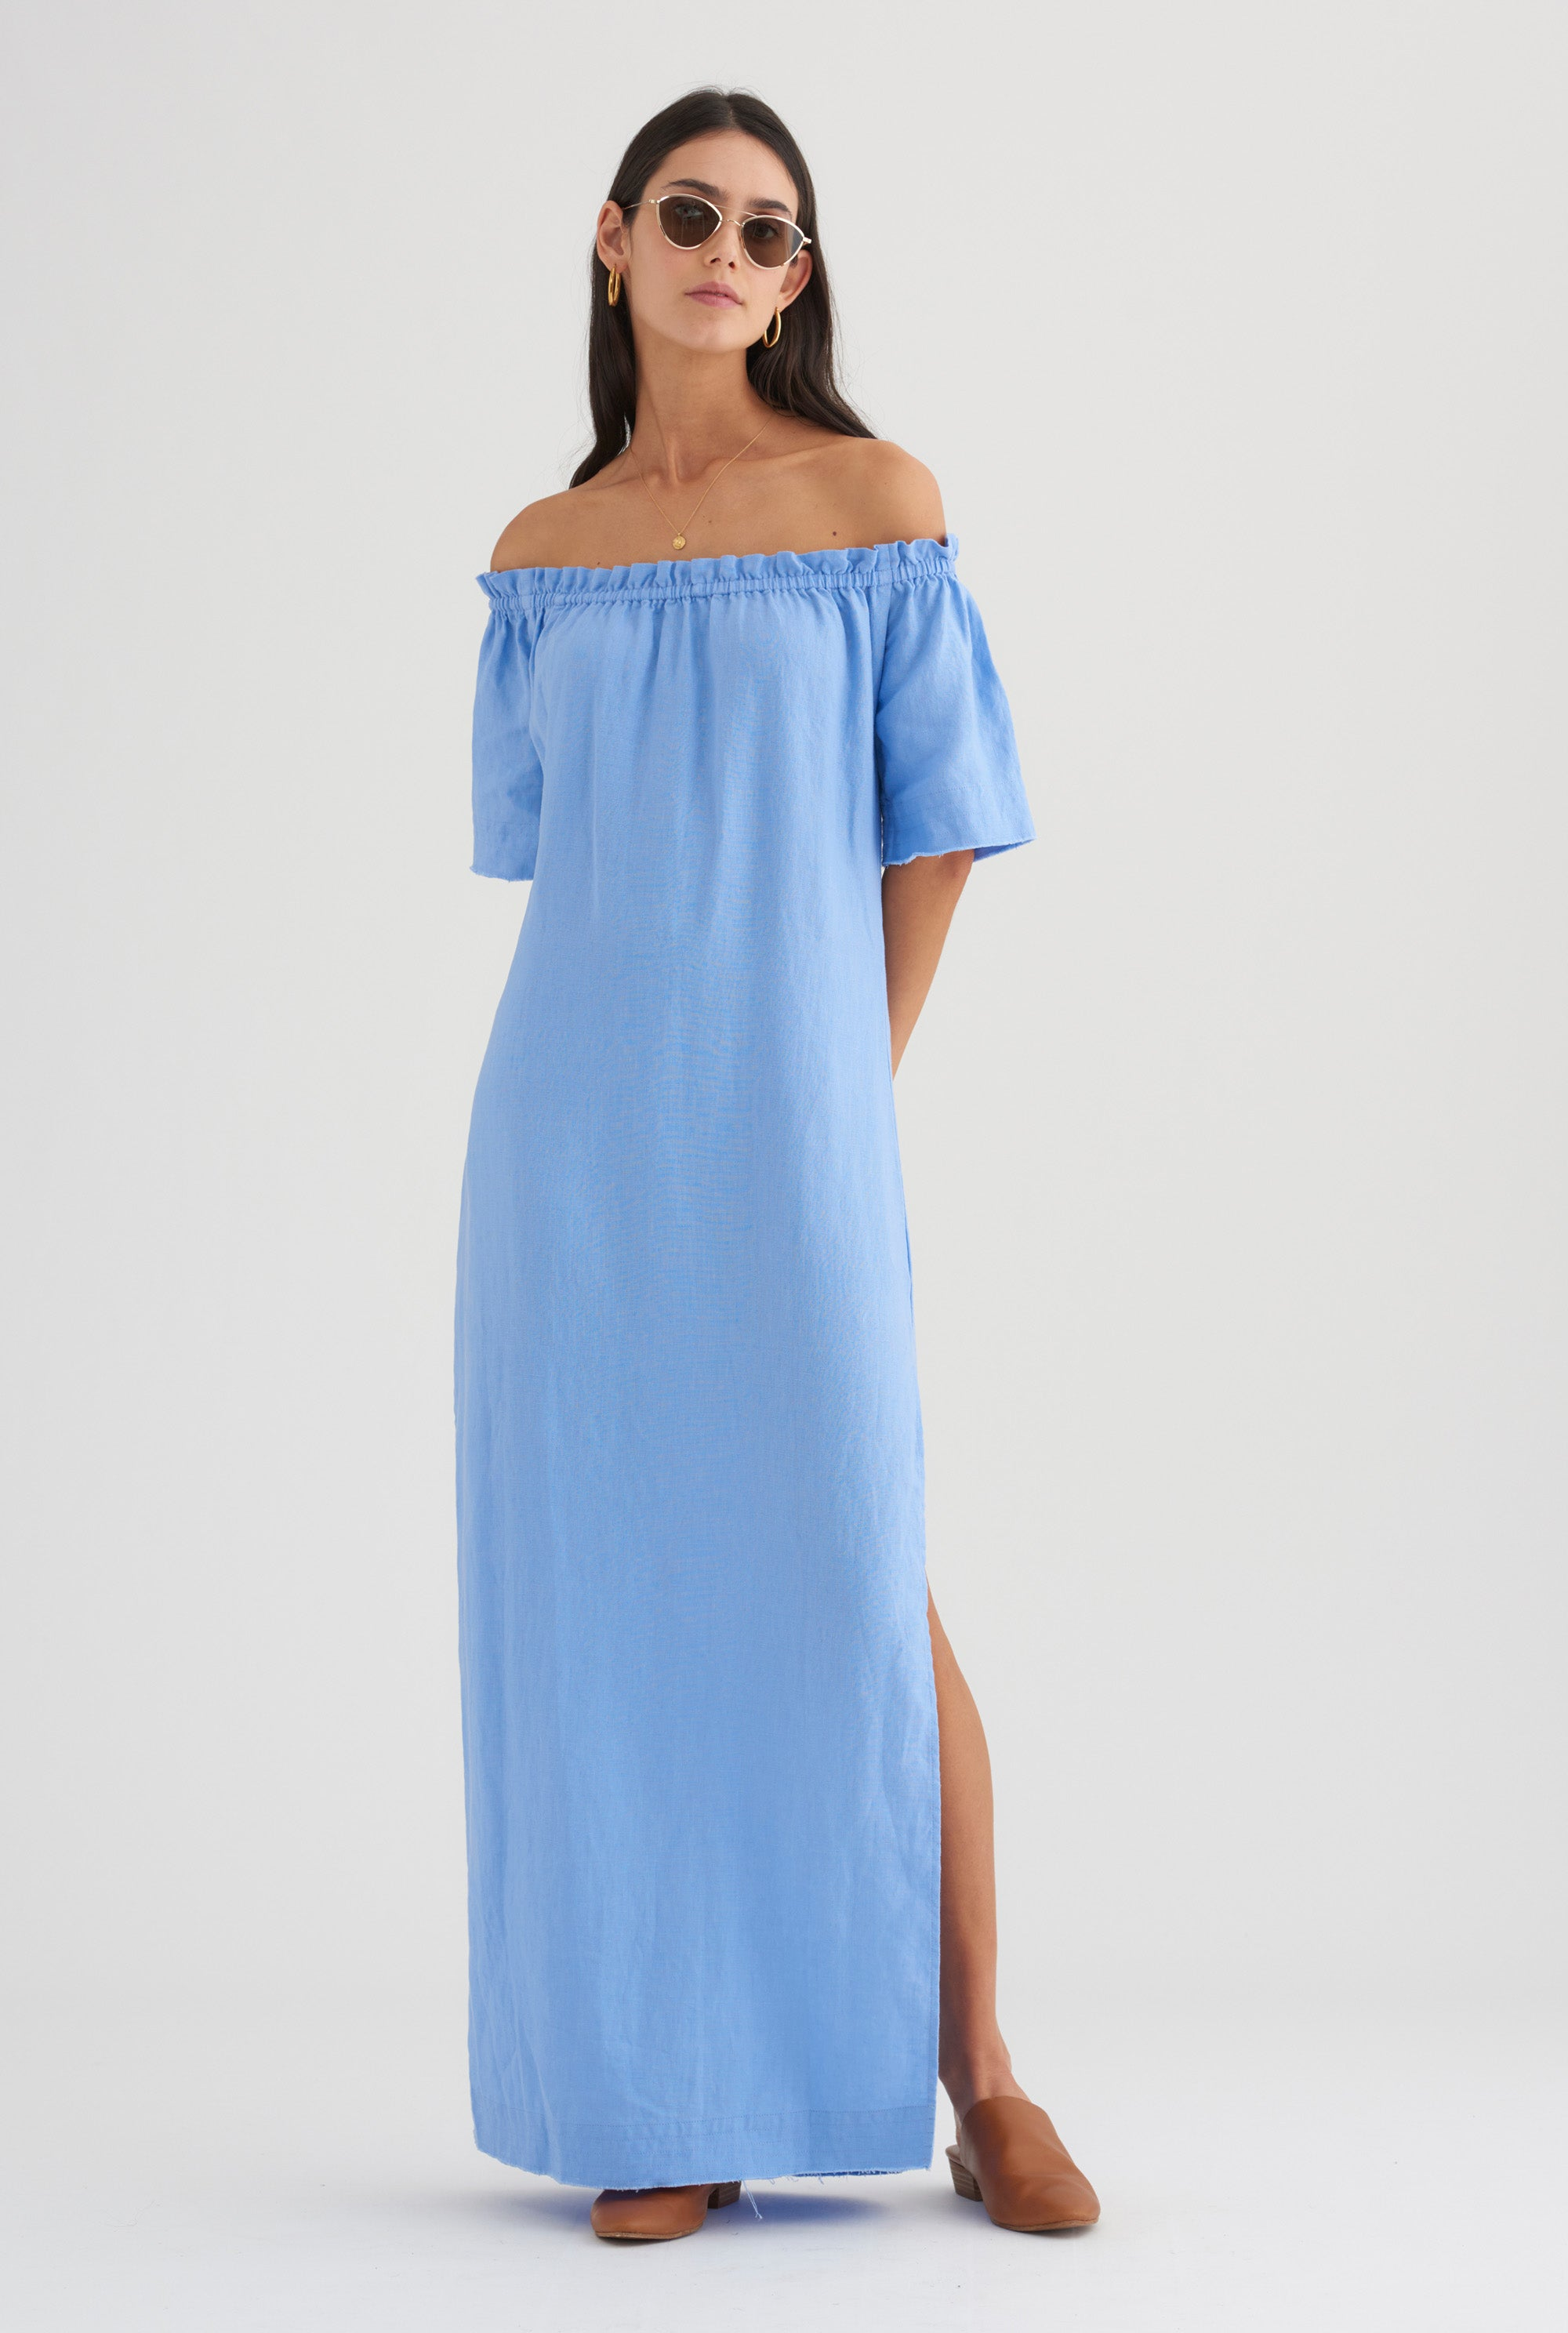 Strapless Maxi Dress - Cornflower Blue